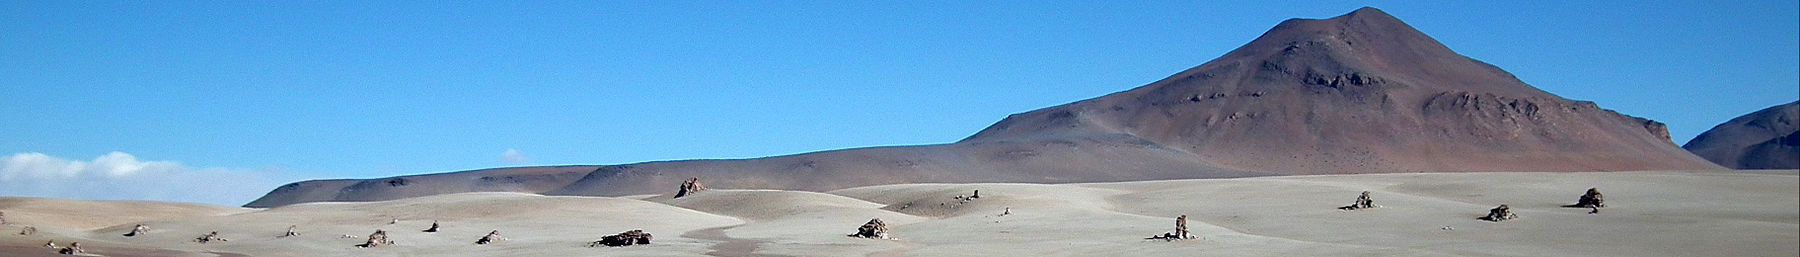 Altiplano Bolivia Wikivoyage banner.jpg